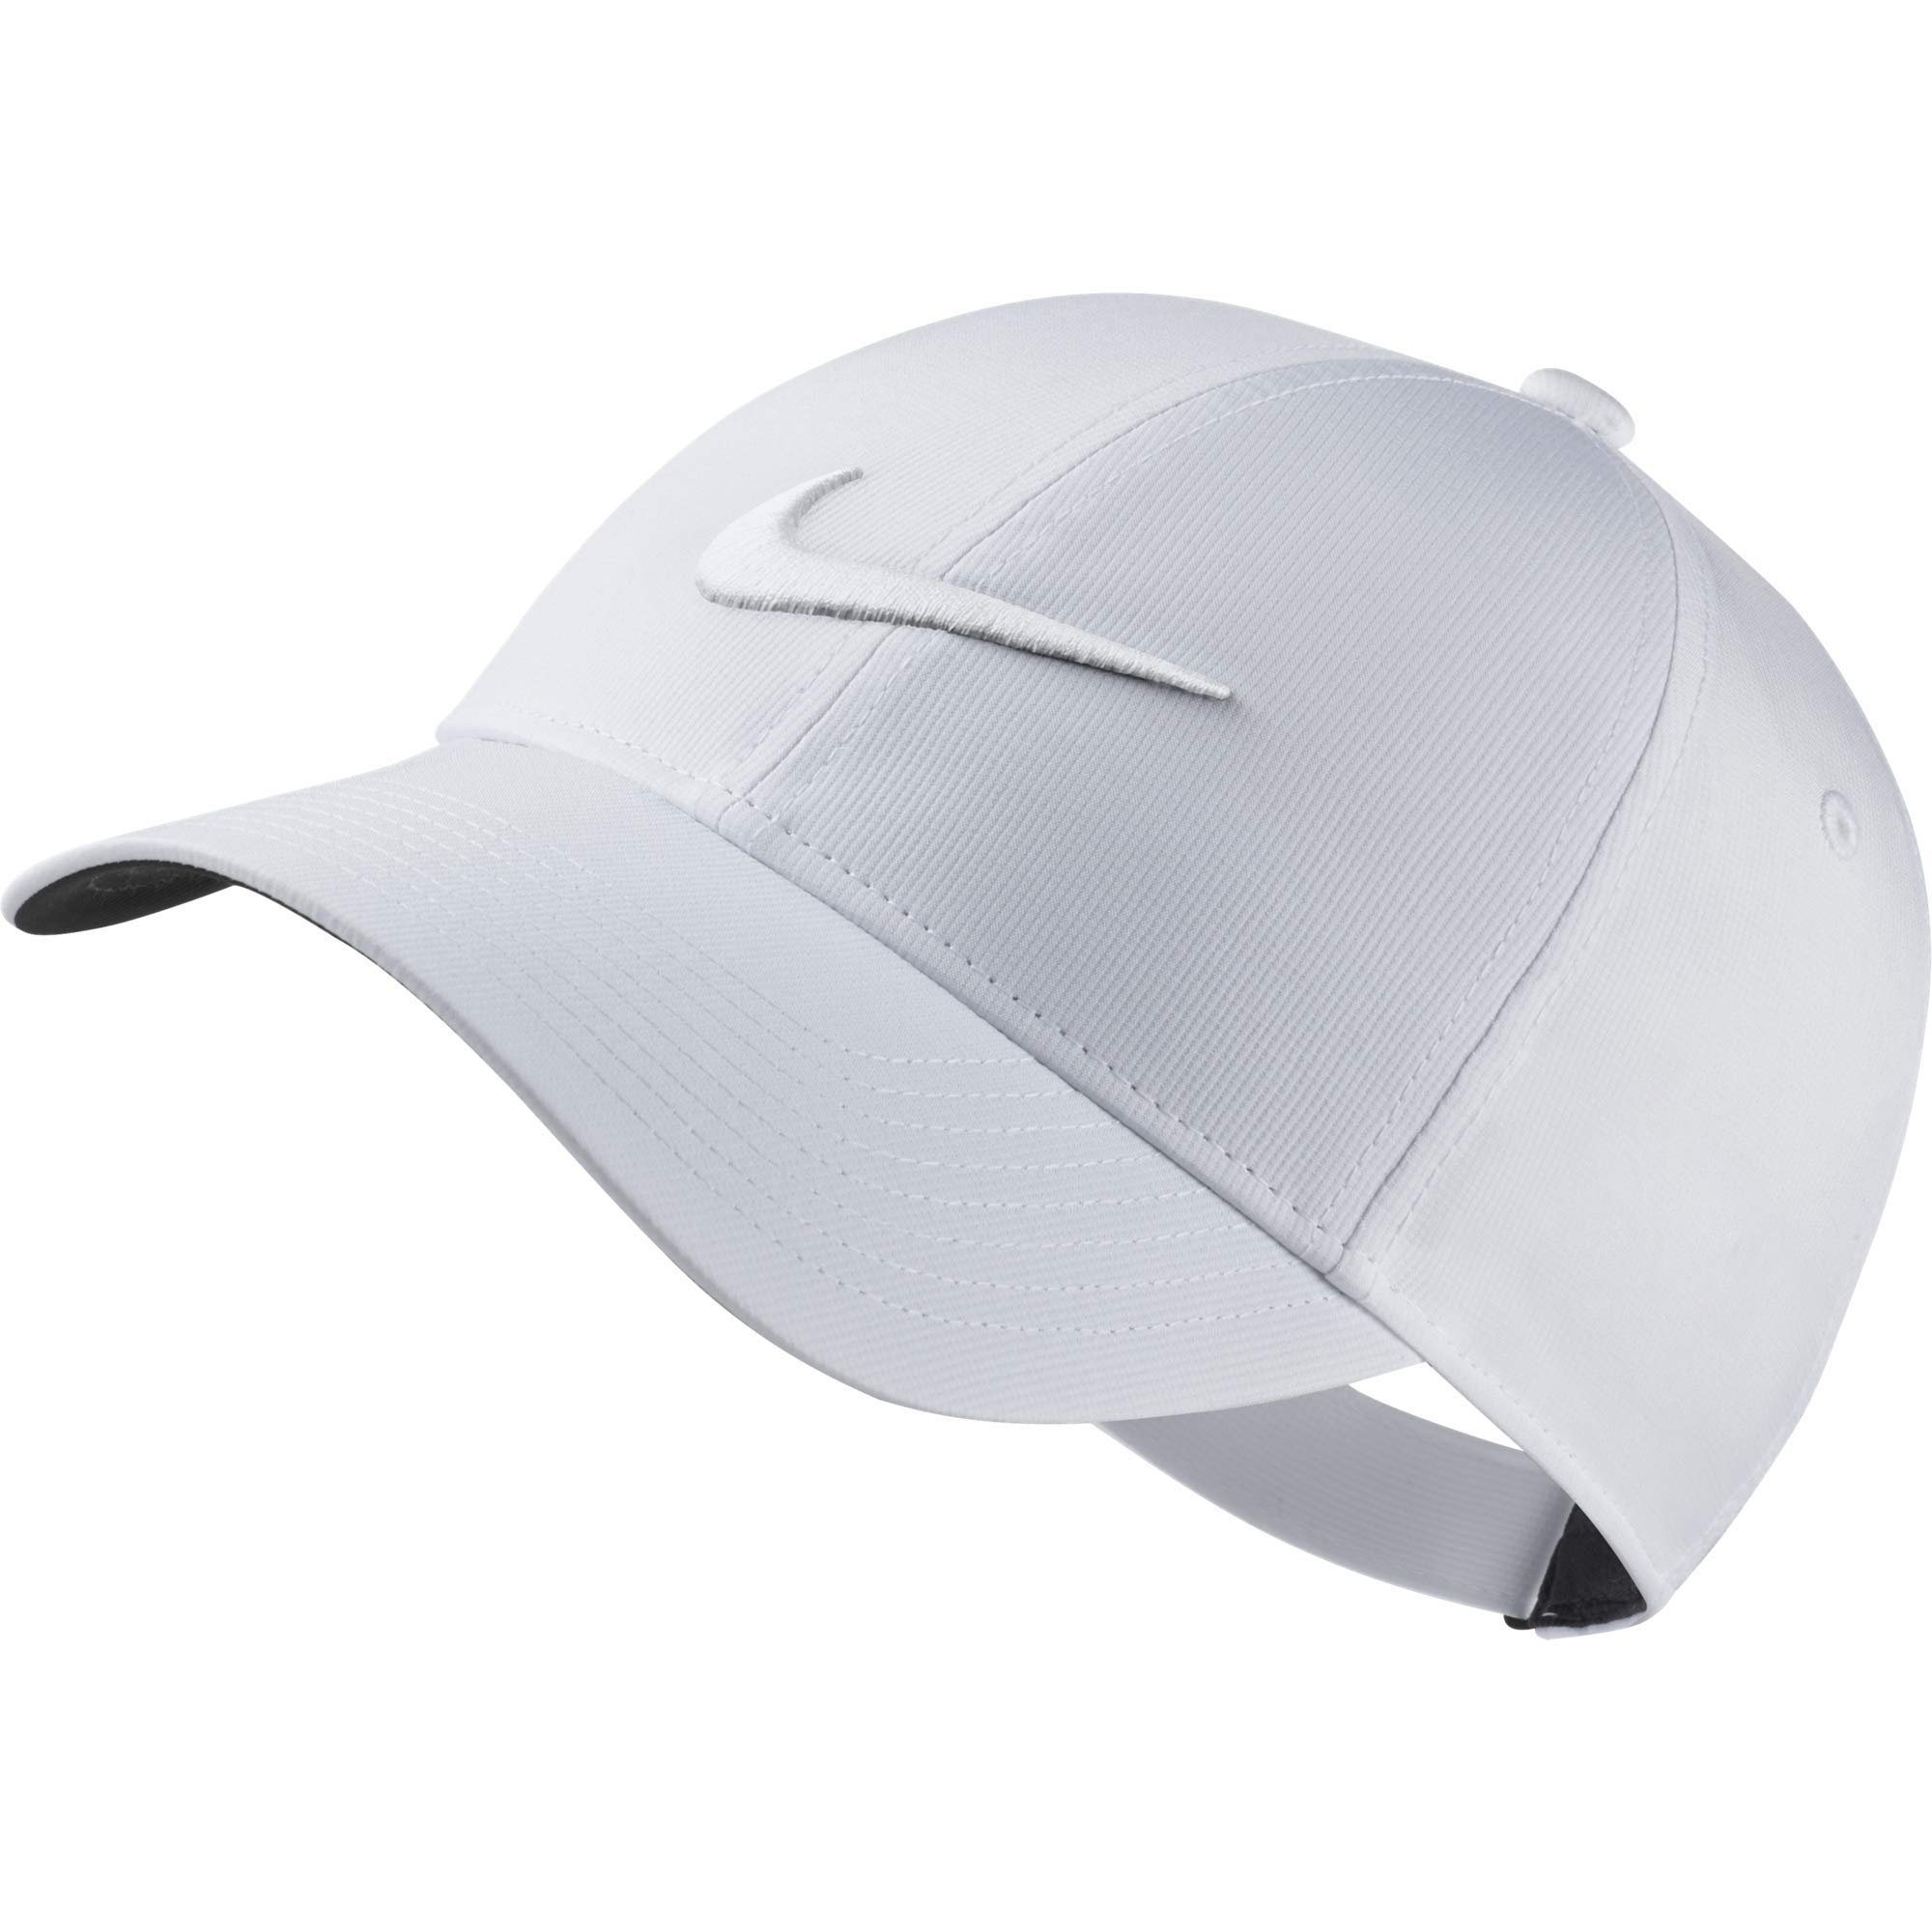 Nike Women's L91 Cap Core, Anthracite/White, Misc by Nike